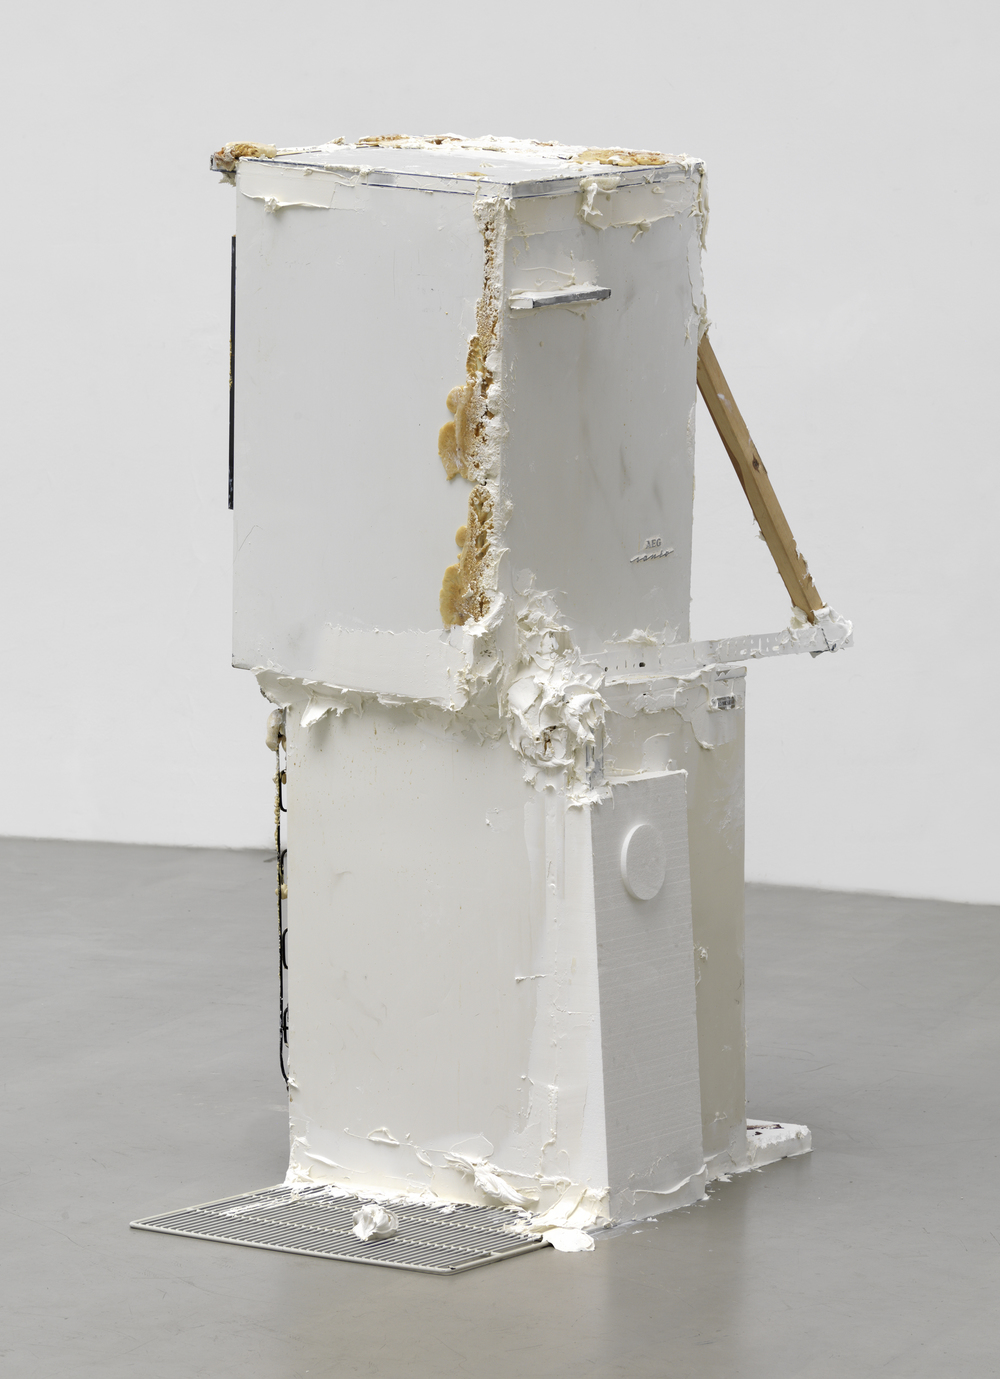 Untitled (version 2), 2014, refrigerators, polyurethane foam, Penaten baby cream, Styrofoam, plastic, wood, wire, chocolate biscuits, Nutella, 175 x 440 x 220 cm